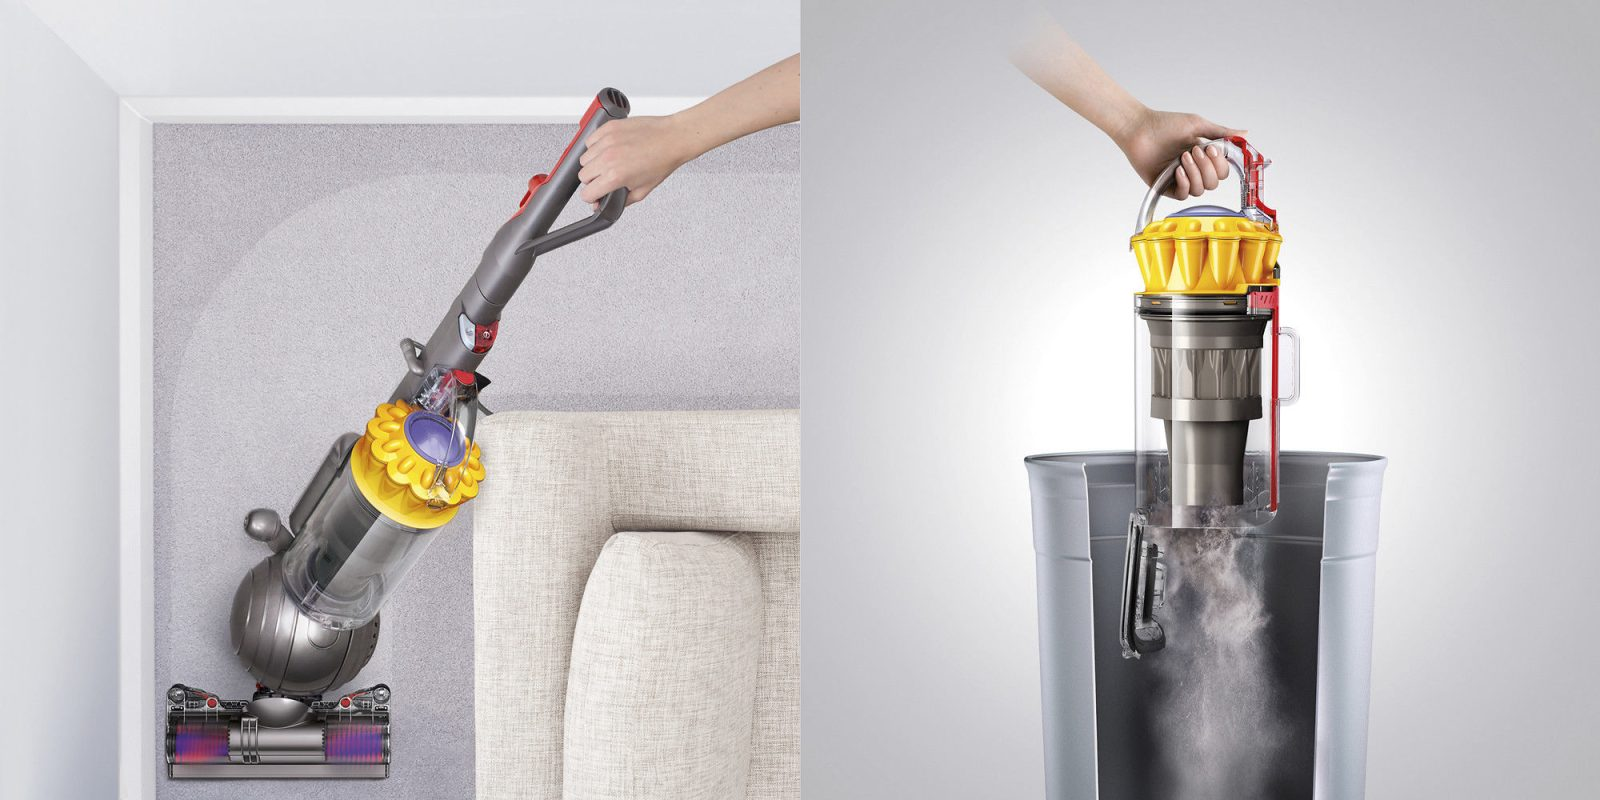 dyson ball multi floor upright vacuum instructions